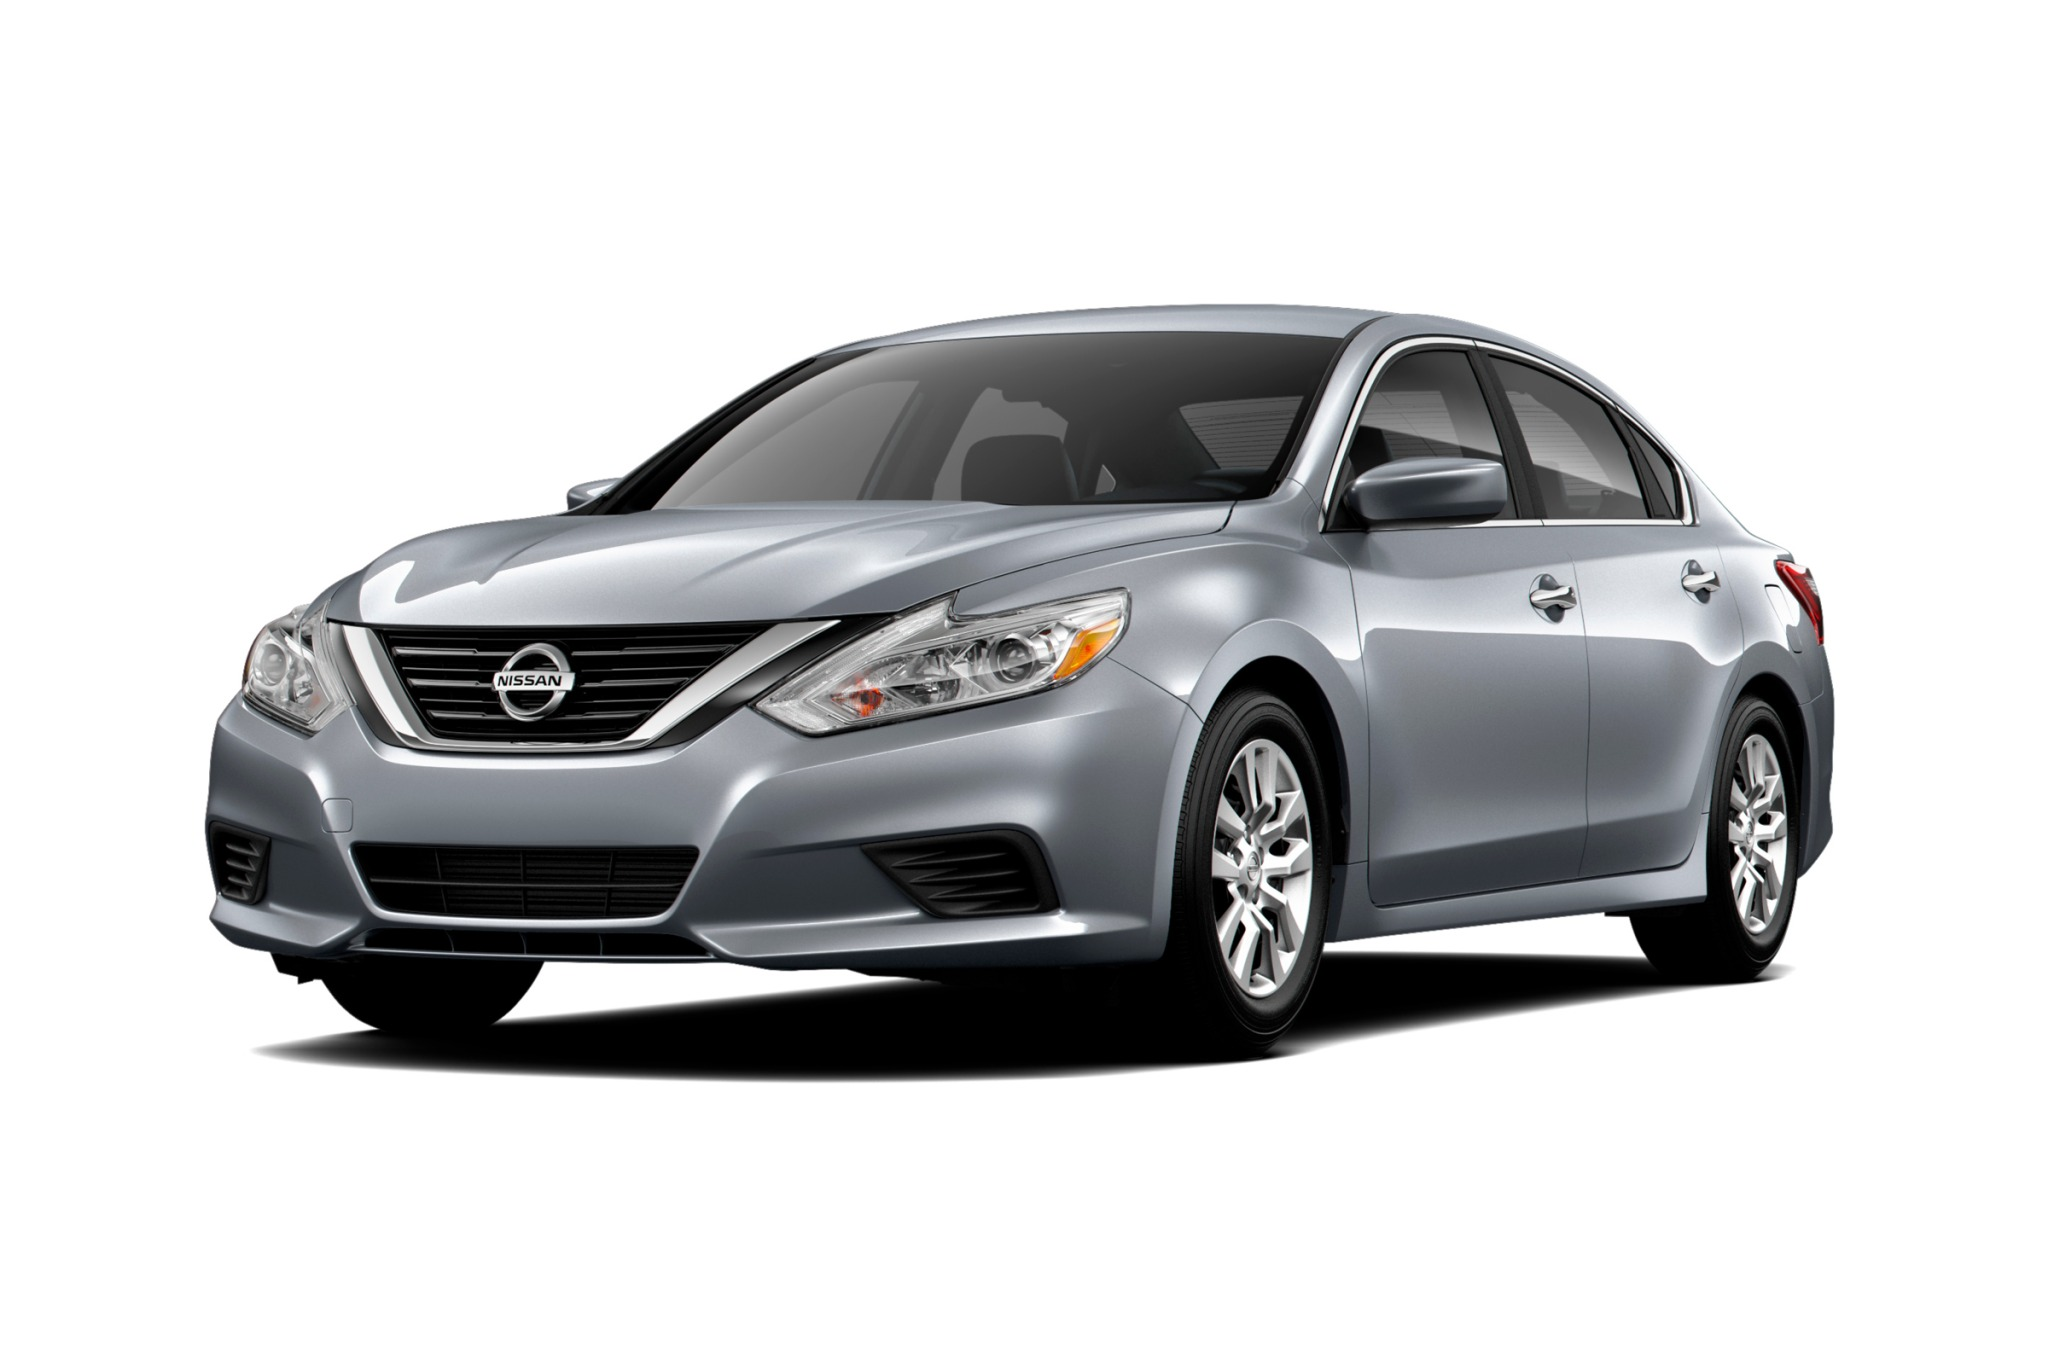 2017 nissan altima sedan 25 fq oem 1 2048